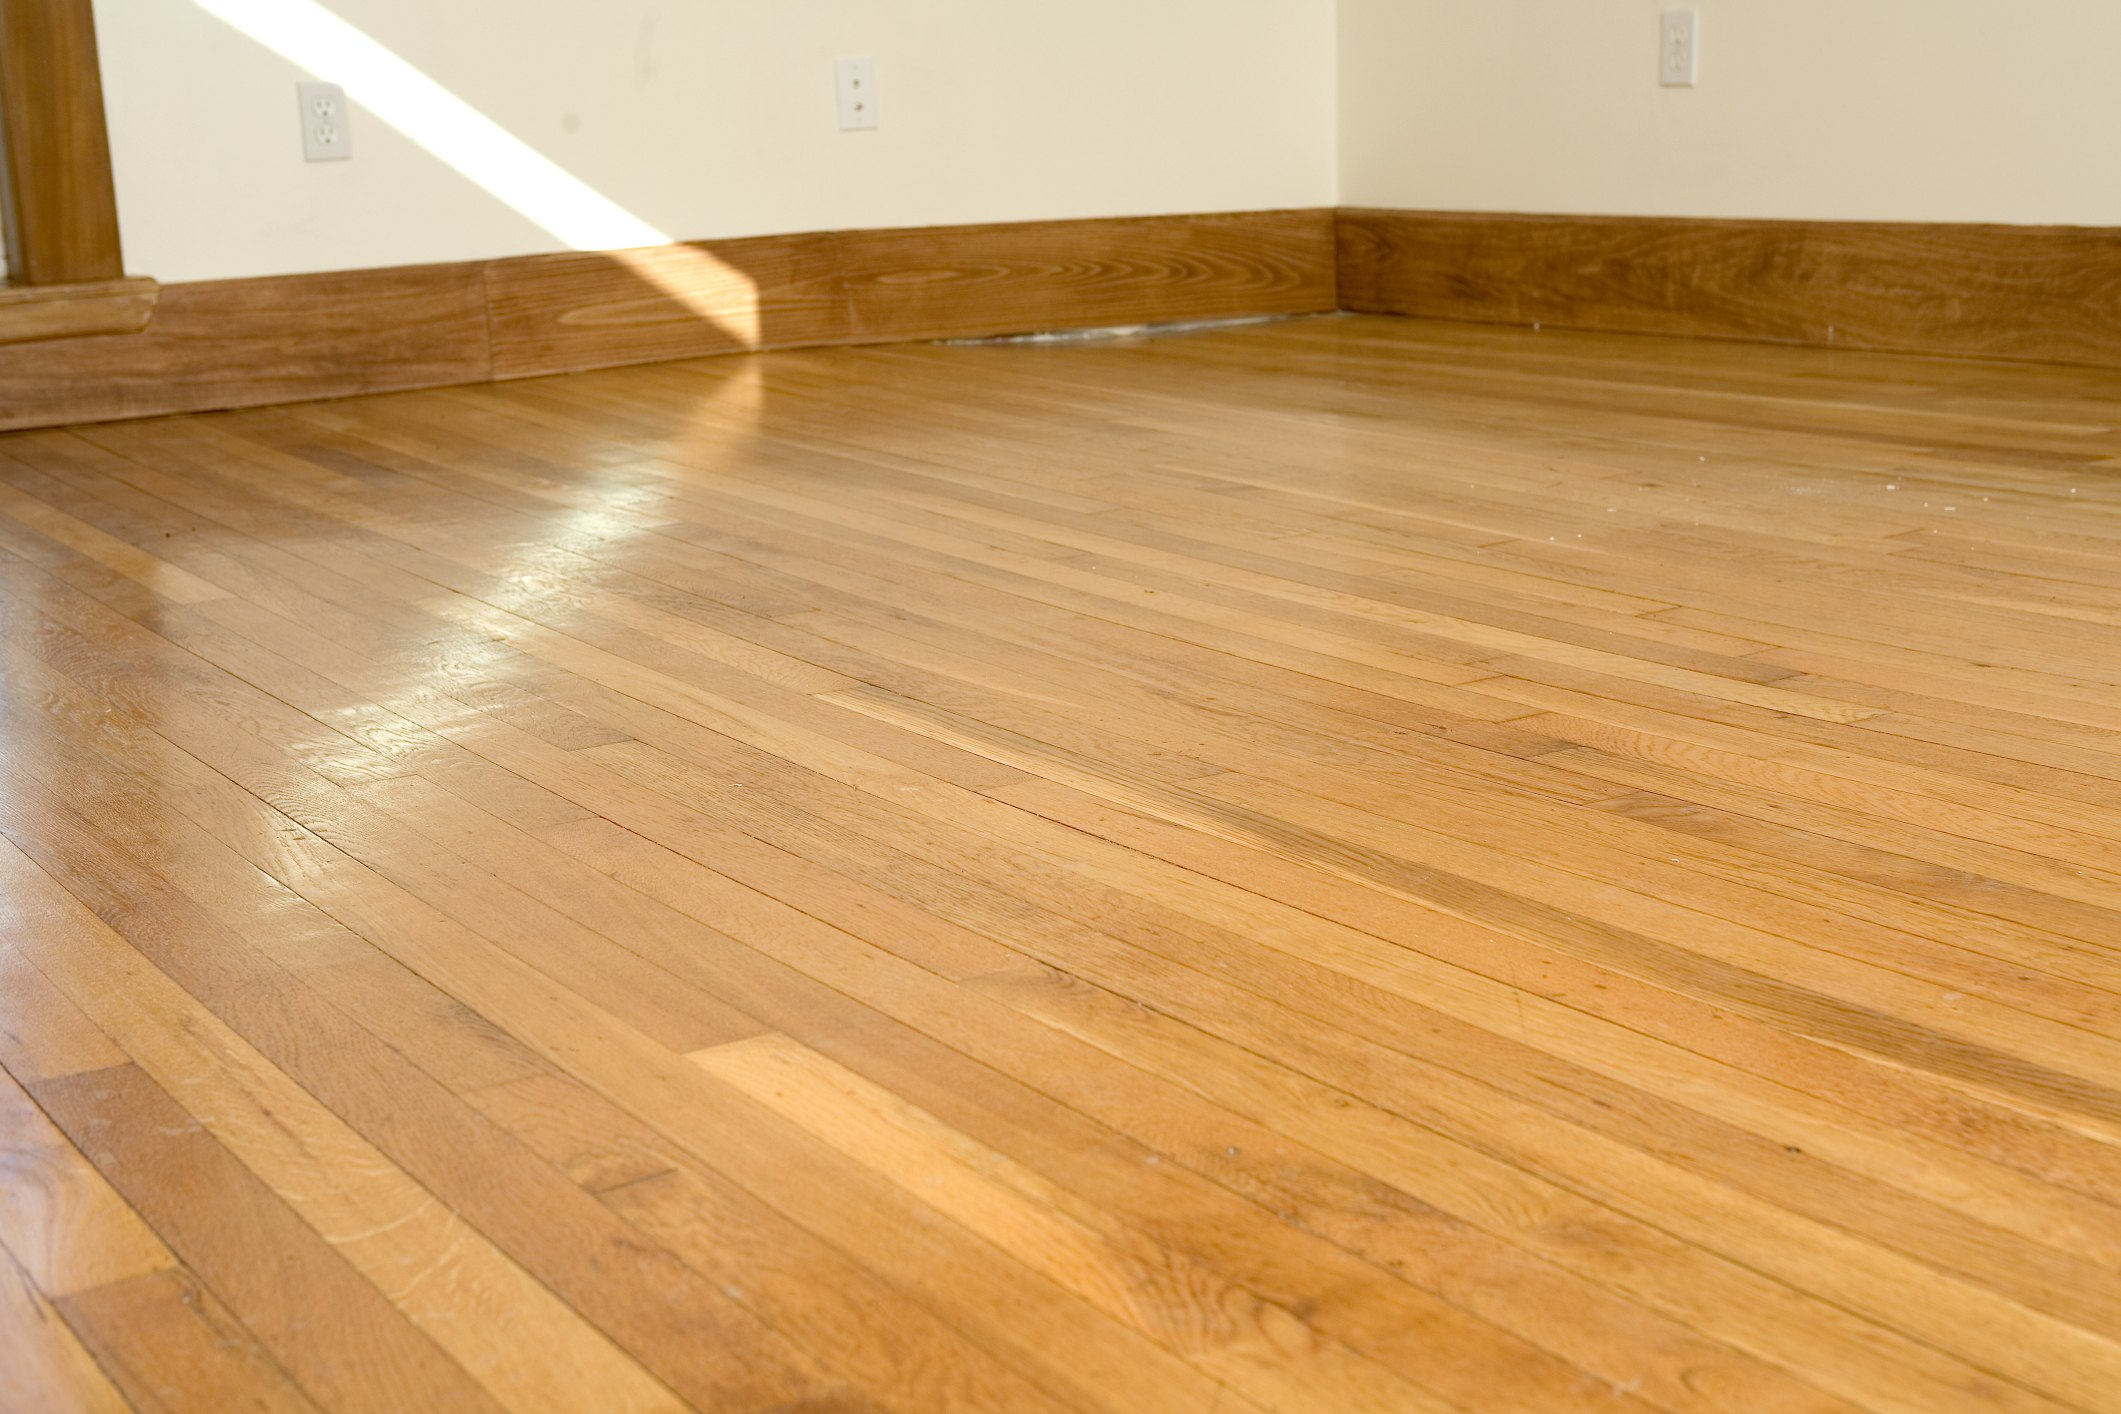 How To Remove Dark Water Spots On Wood Floors Ehow